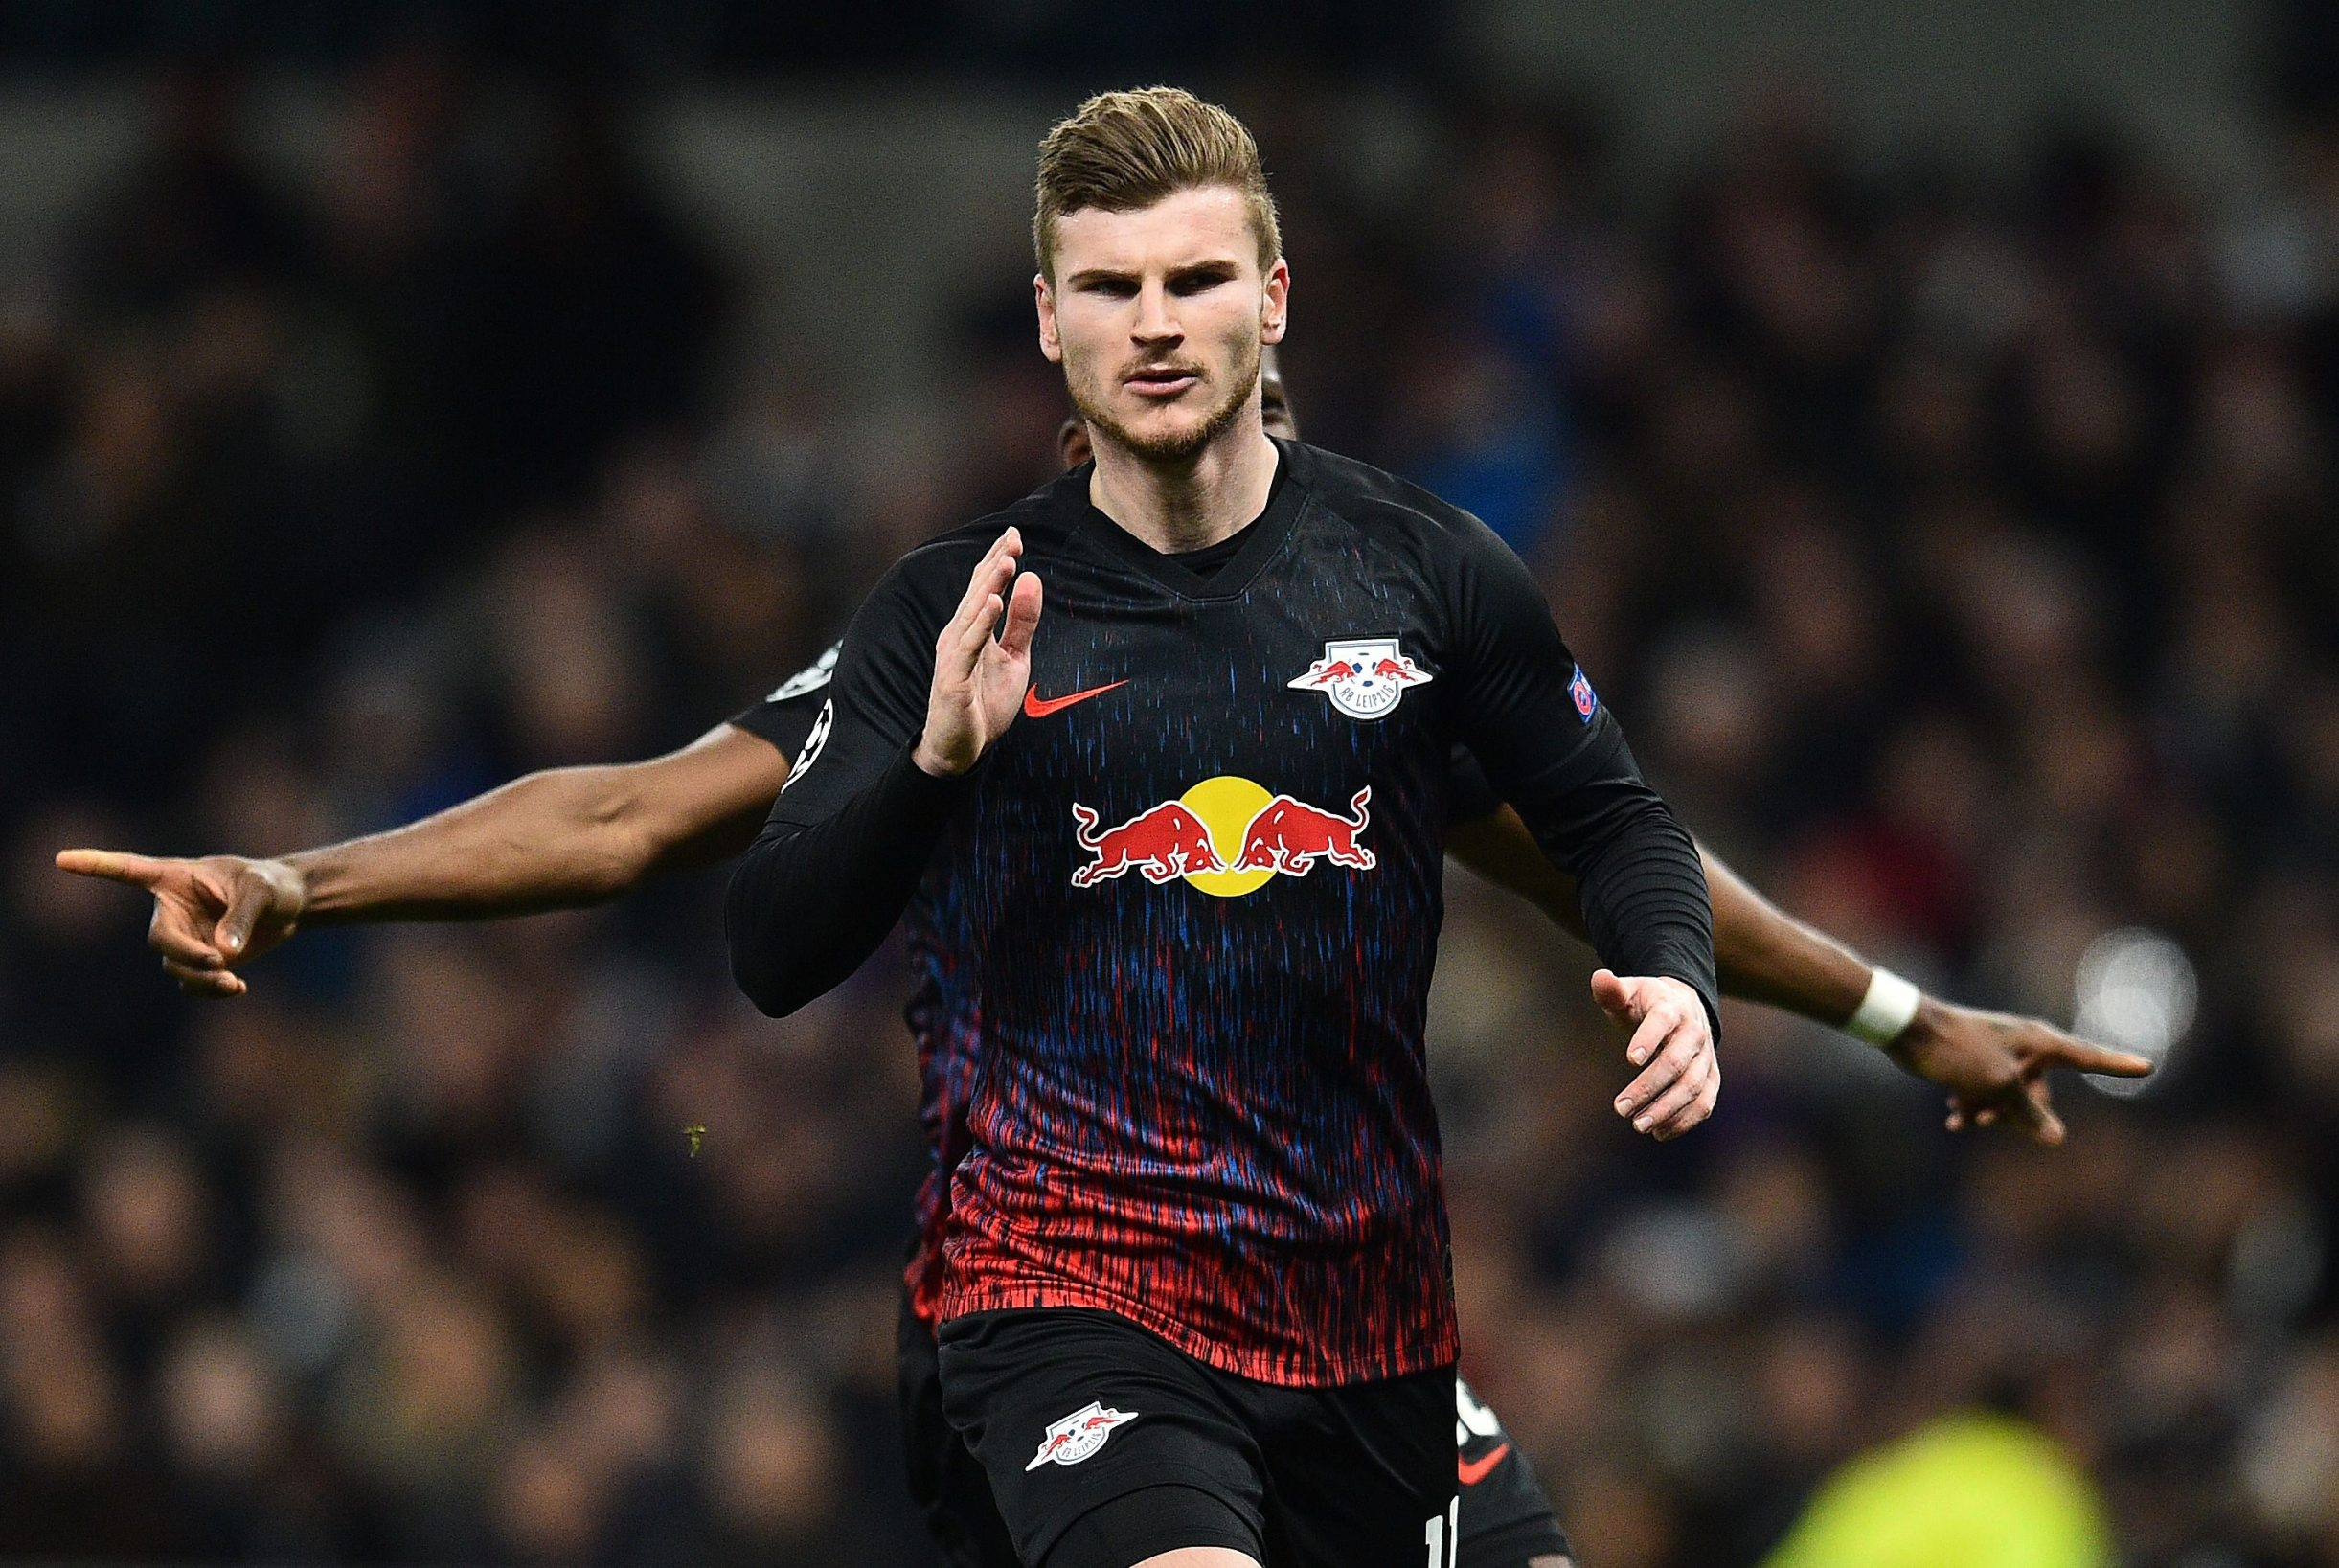 RB Leipzig's German striker Timo Werner celebrates scoring the opening goal from the penalty spot during the UEFA Champions League round of 16 first Leg football match between Tottenham Hotspur and RB Leipzig at the Tottenham Hotspur Stadium in north London, on February 19, 2020. (Photo by Glyn KIRK / IKIMAGES / AFP)